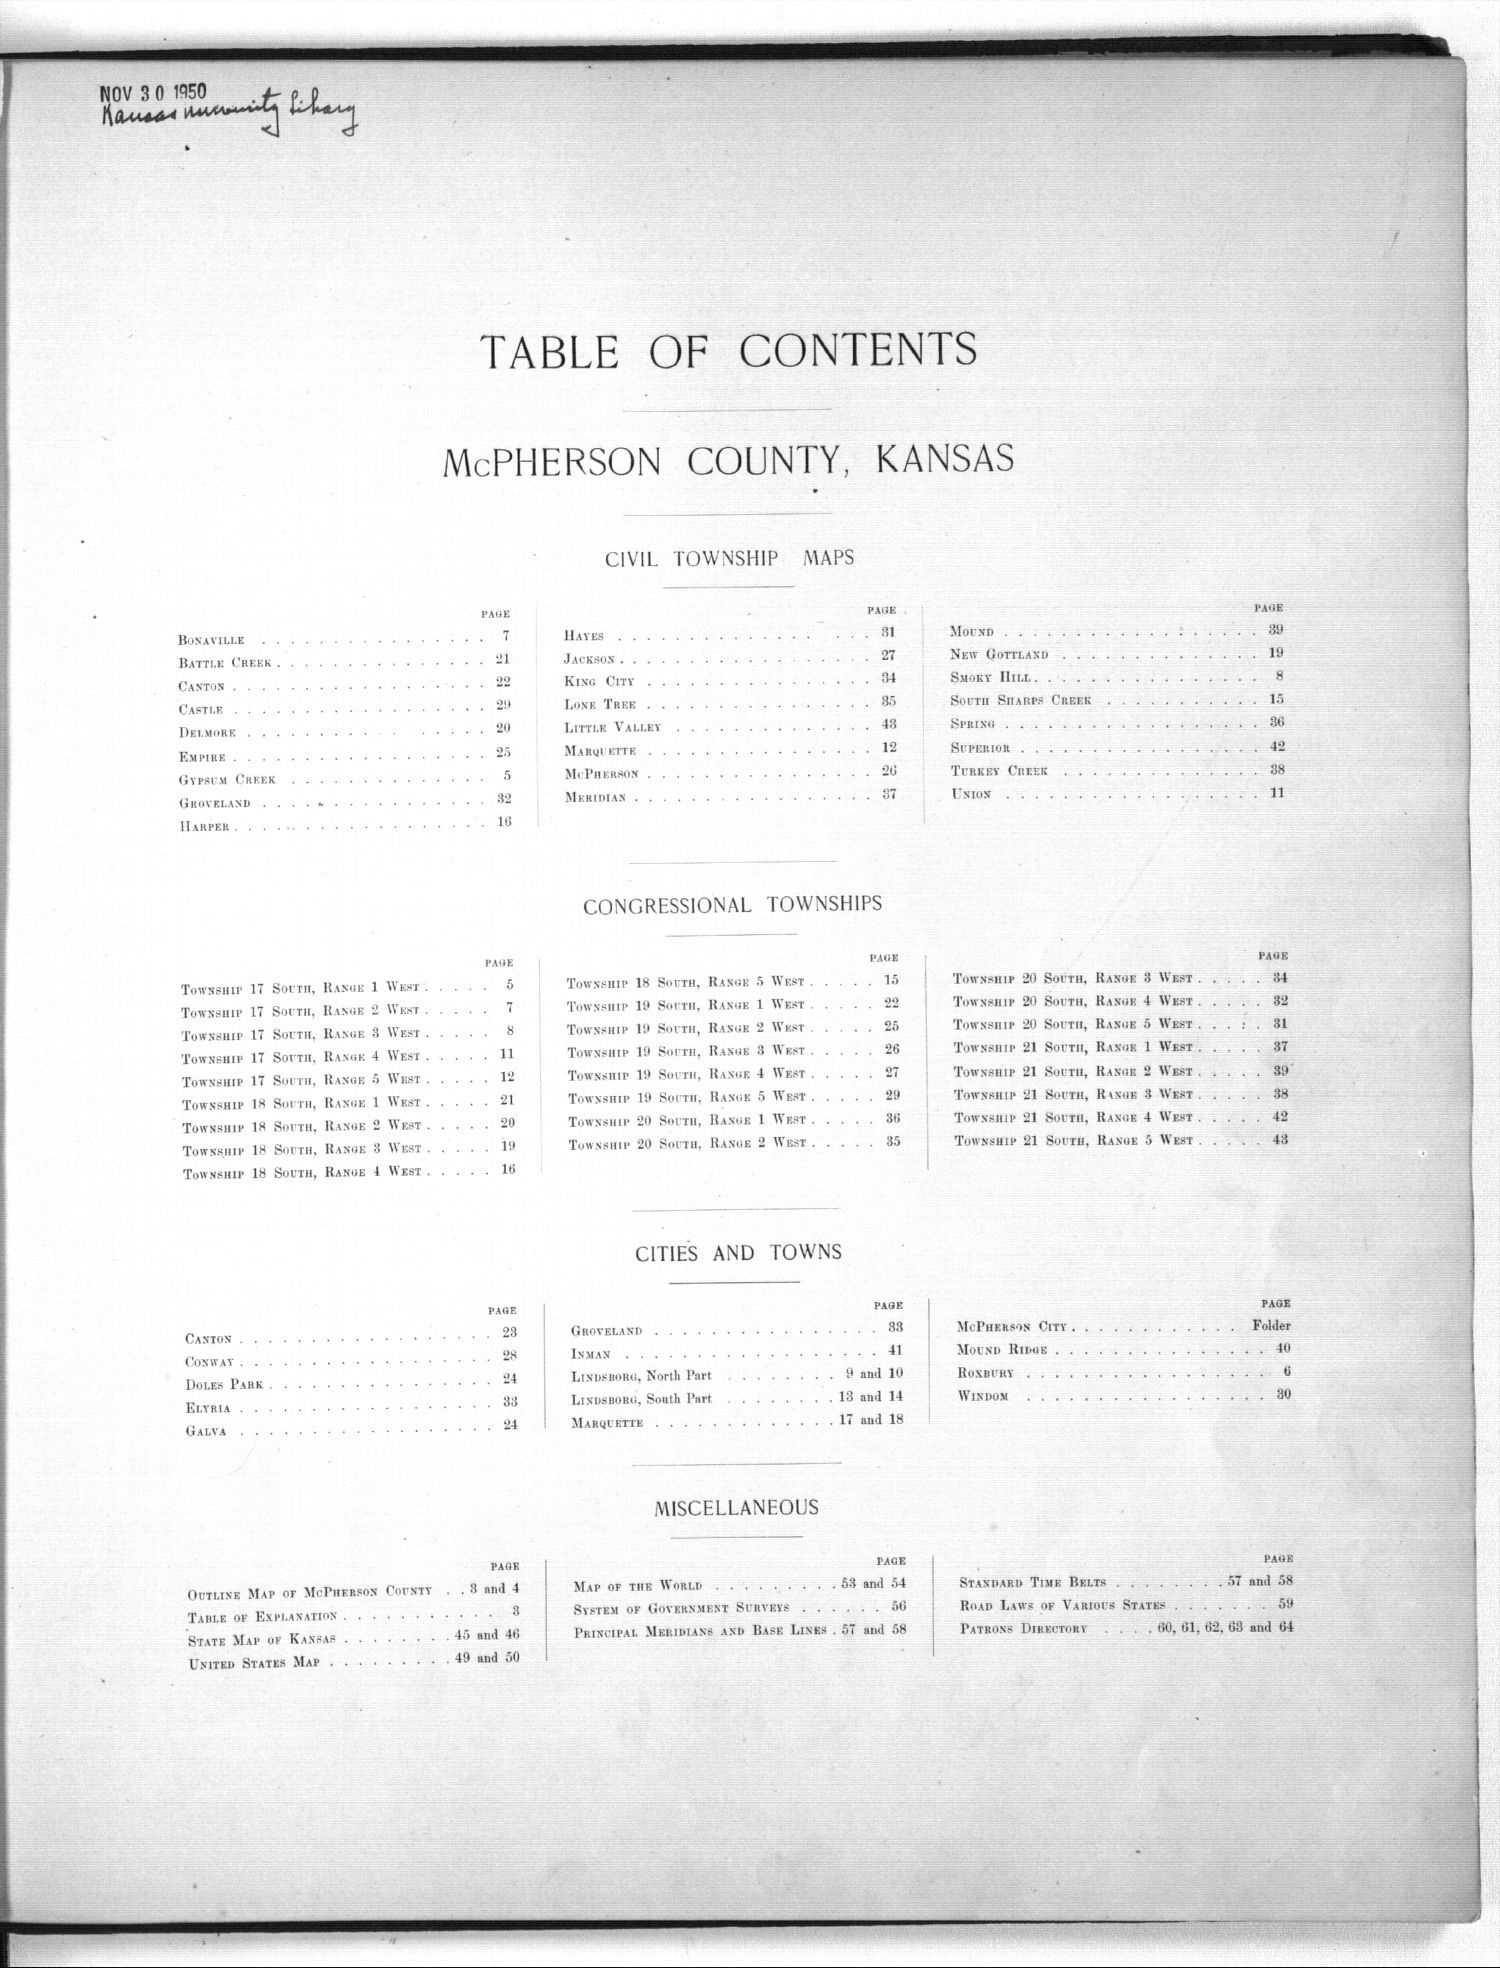 Plat book of McPherson County, Kansas - Table of Contents